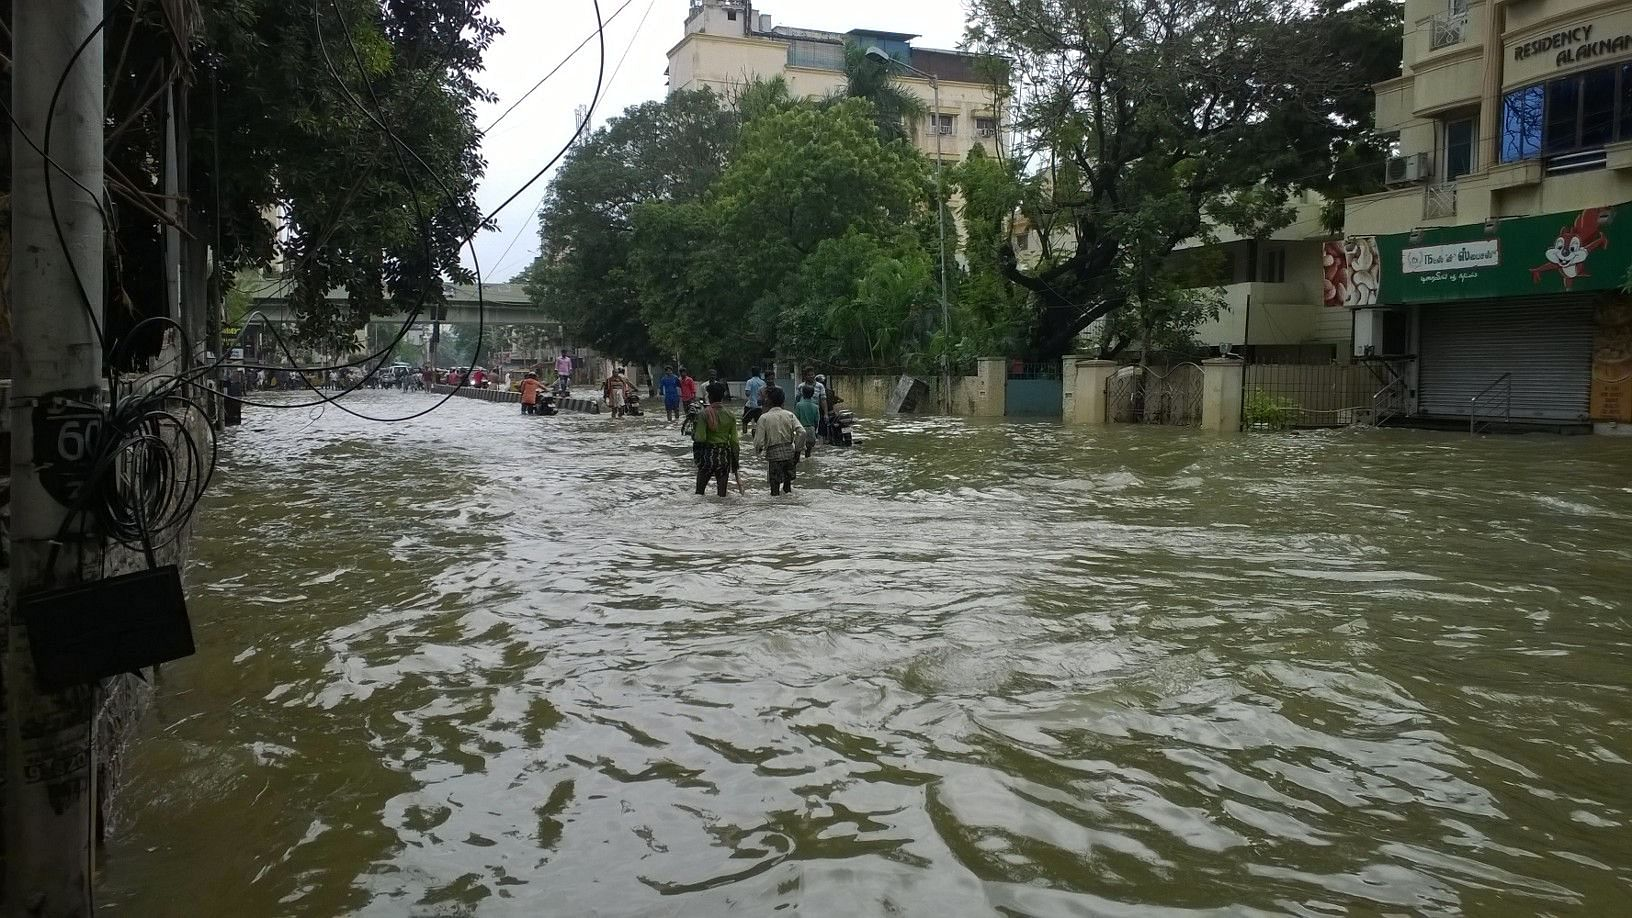 Flooding in Chennai. (Source: Wikimedia Commons)